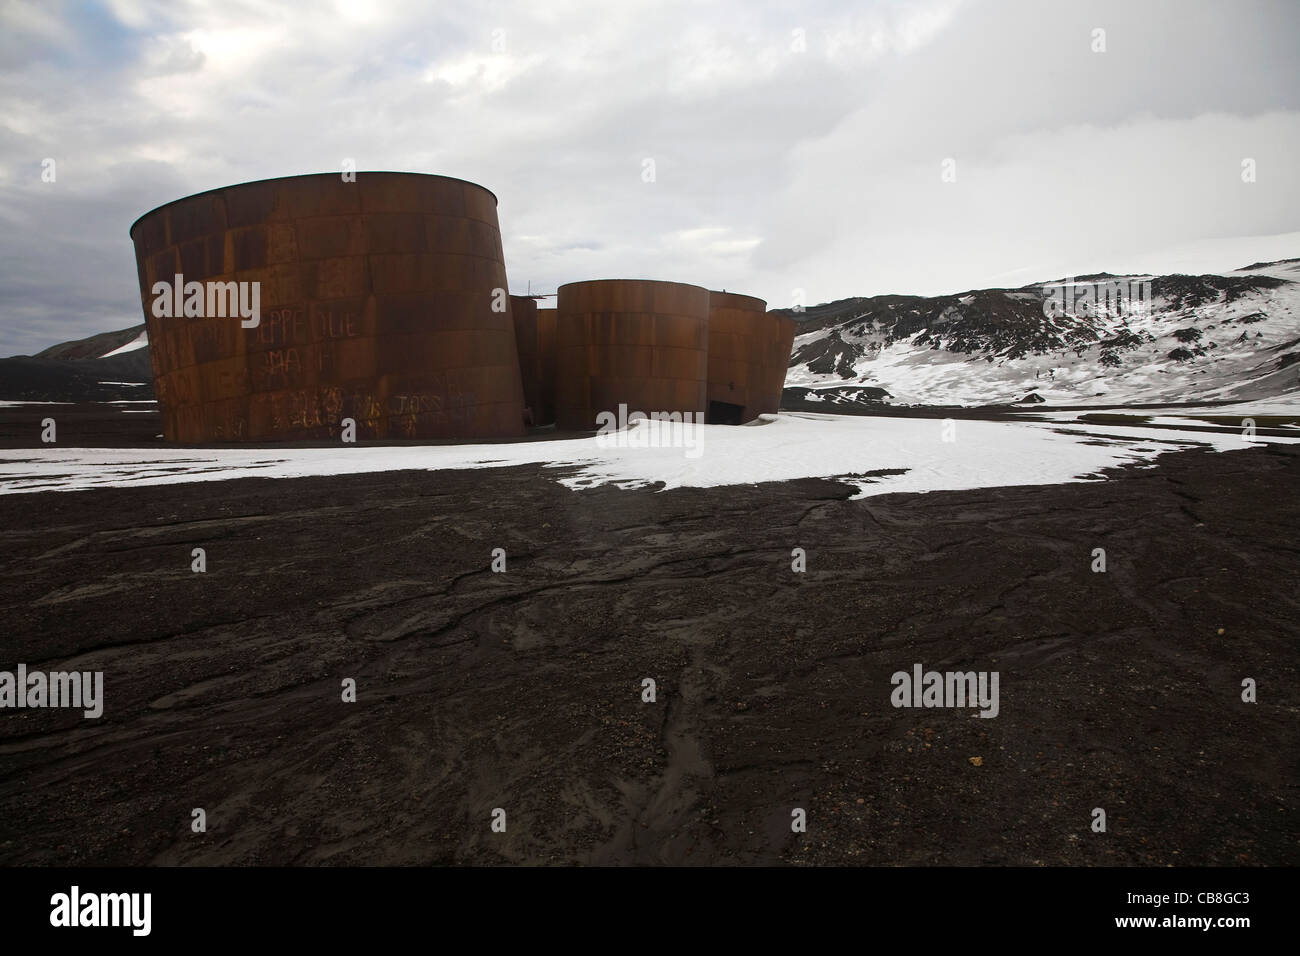 Rusty tanks at old whaling station at Whaler's Bay, Deception Island, South Shetland Islands, Antarctica - Stock Image